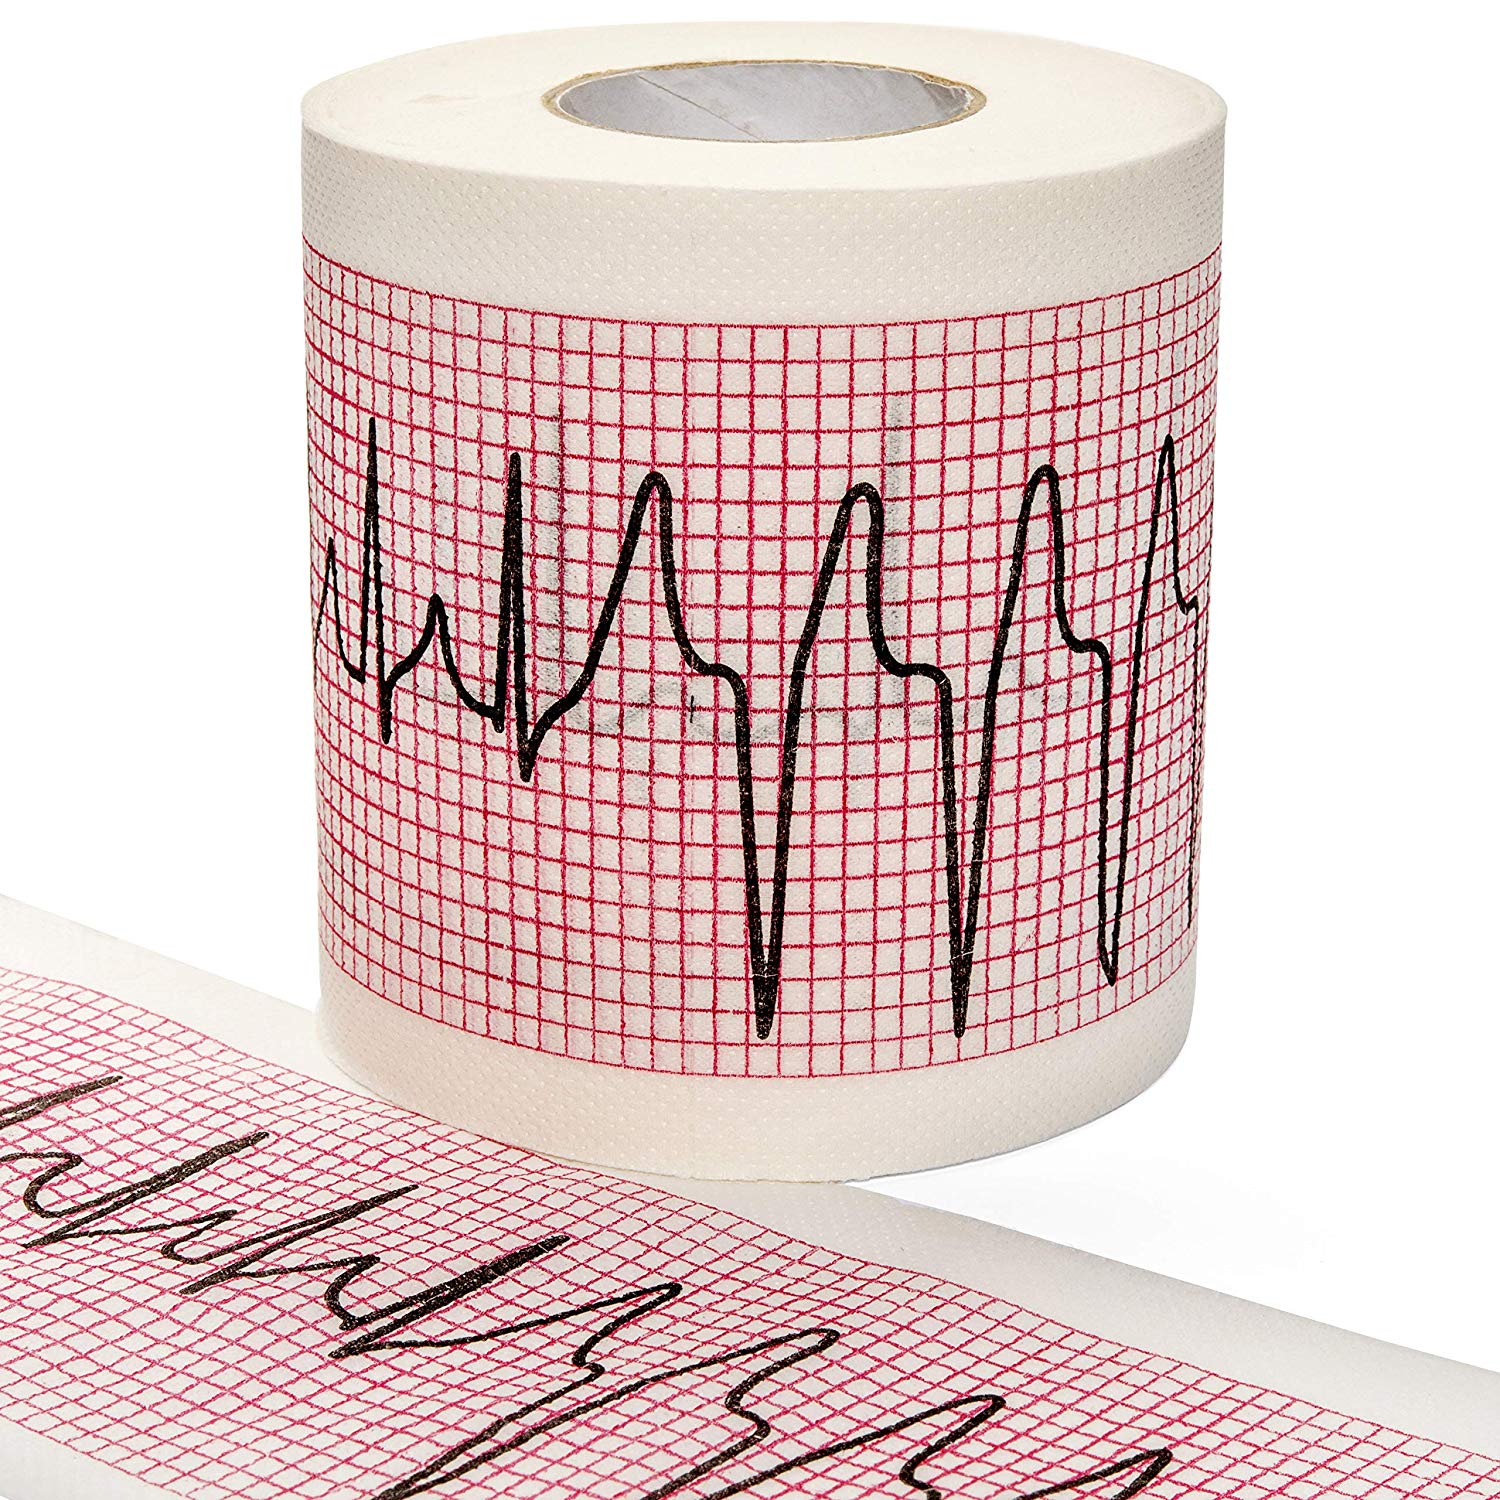 Cardiology ICU Toilet Paper